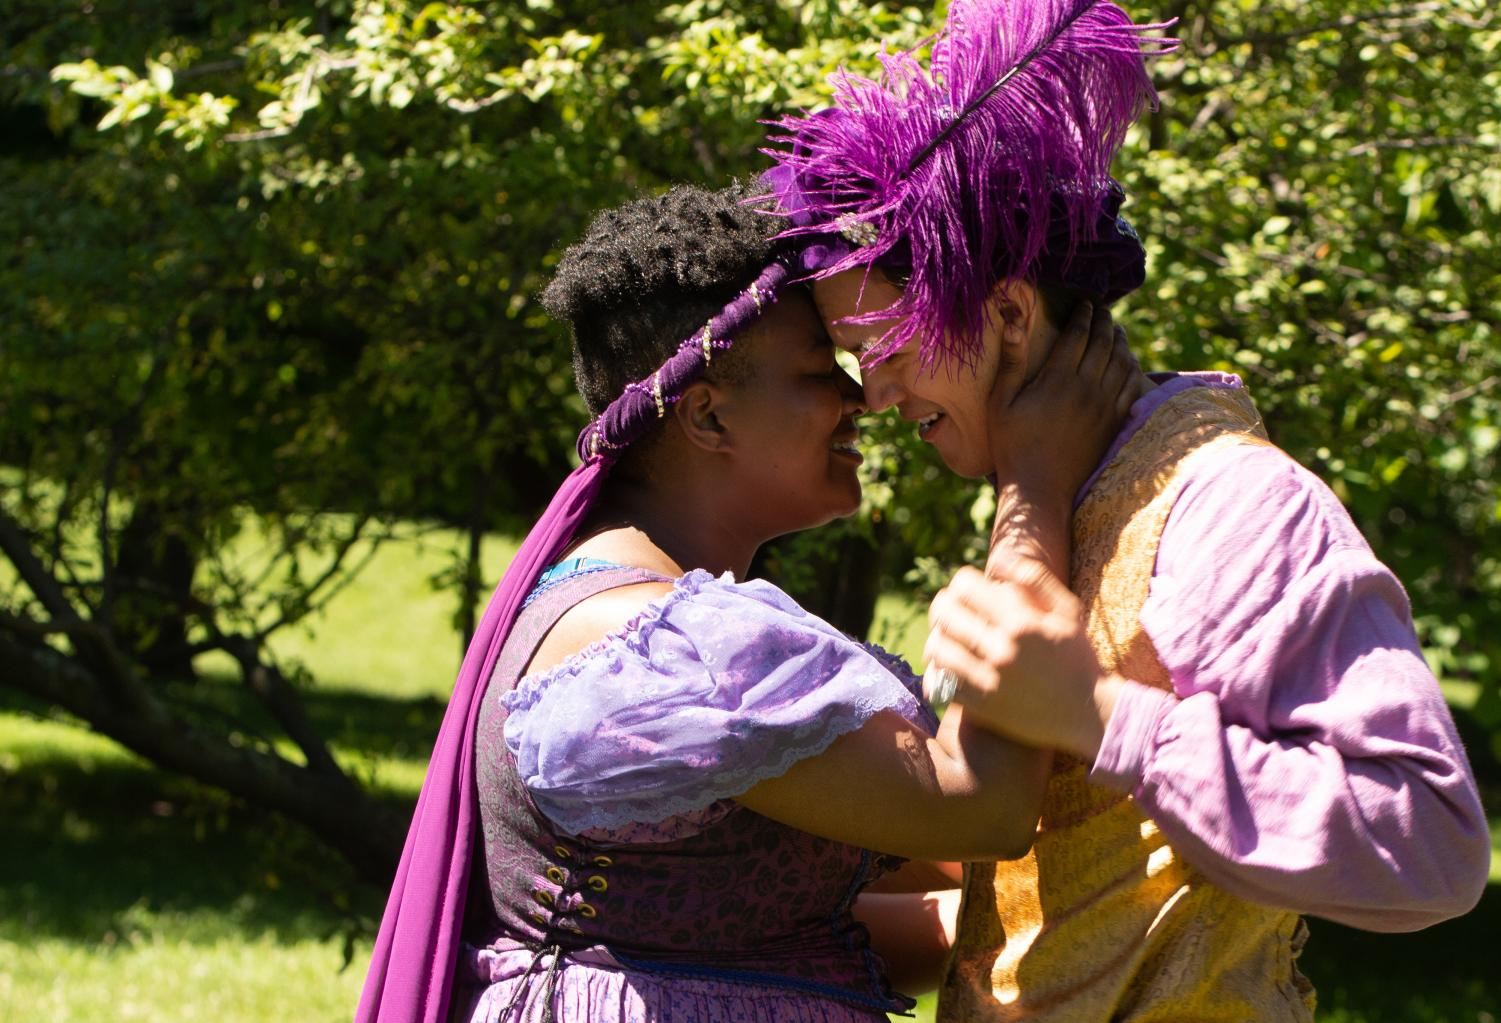 Two actors rehearse 'The Gentlemen of Verona.' Midsommer Flight will perform the play in four Chicago parks through August 26.